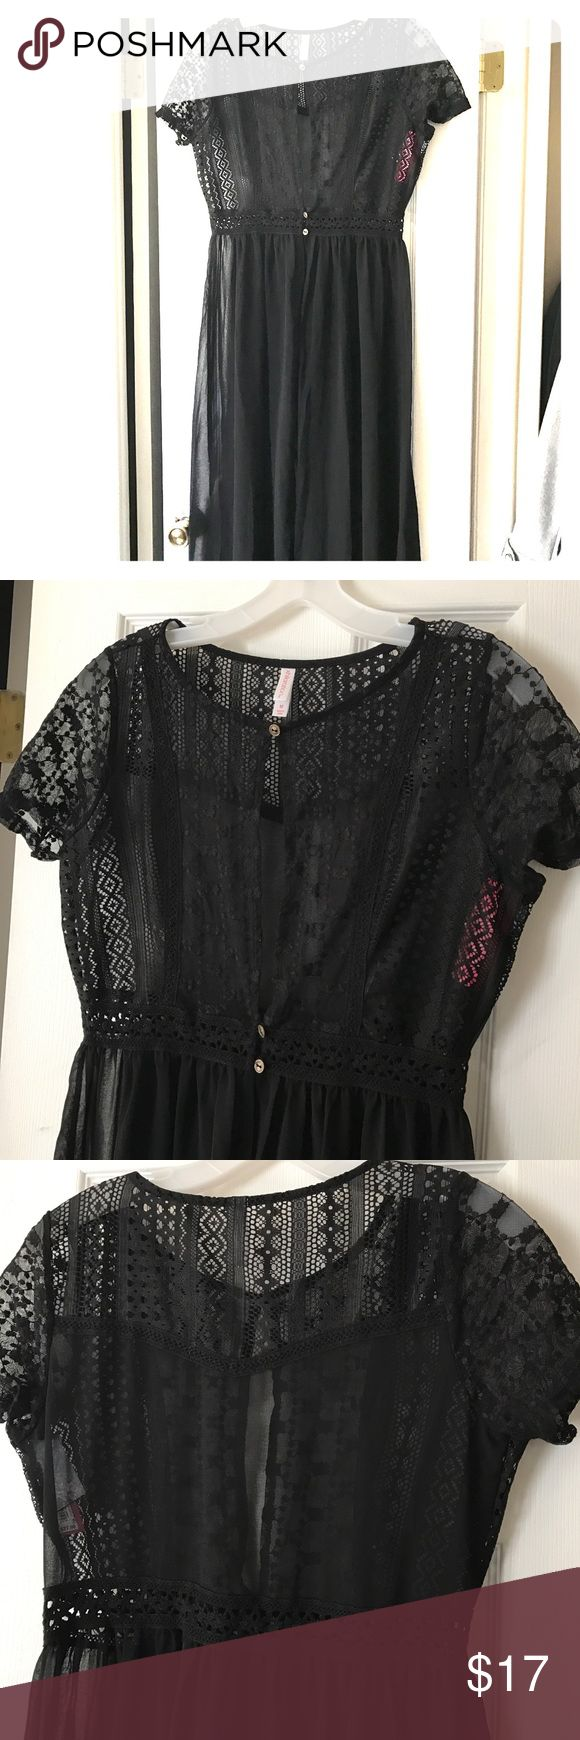 Black Crochet Top Flyaway Summer top Black short sleeves, top with 3 cute gold buttons, crochet detailing. Bottom is sheer with flyaway look. Super cute with tank and crops, maybe a pair of heels!! Xhilaration Tops Blouses